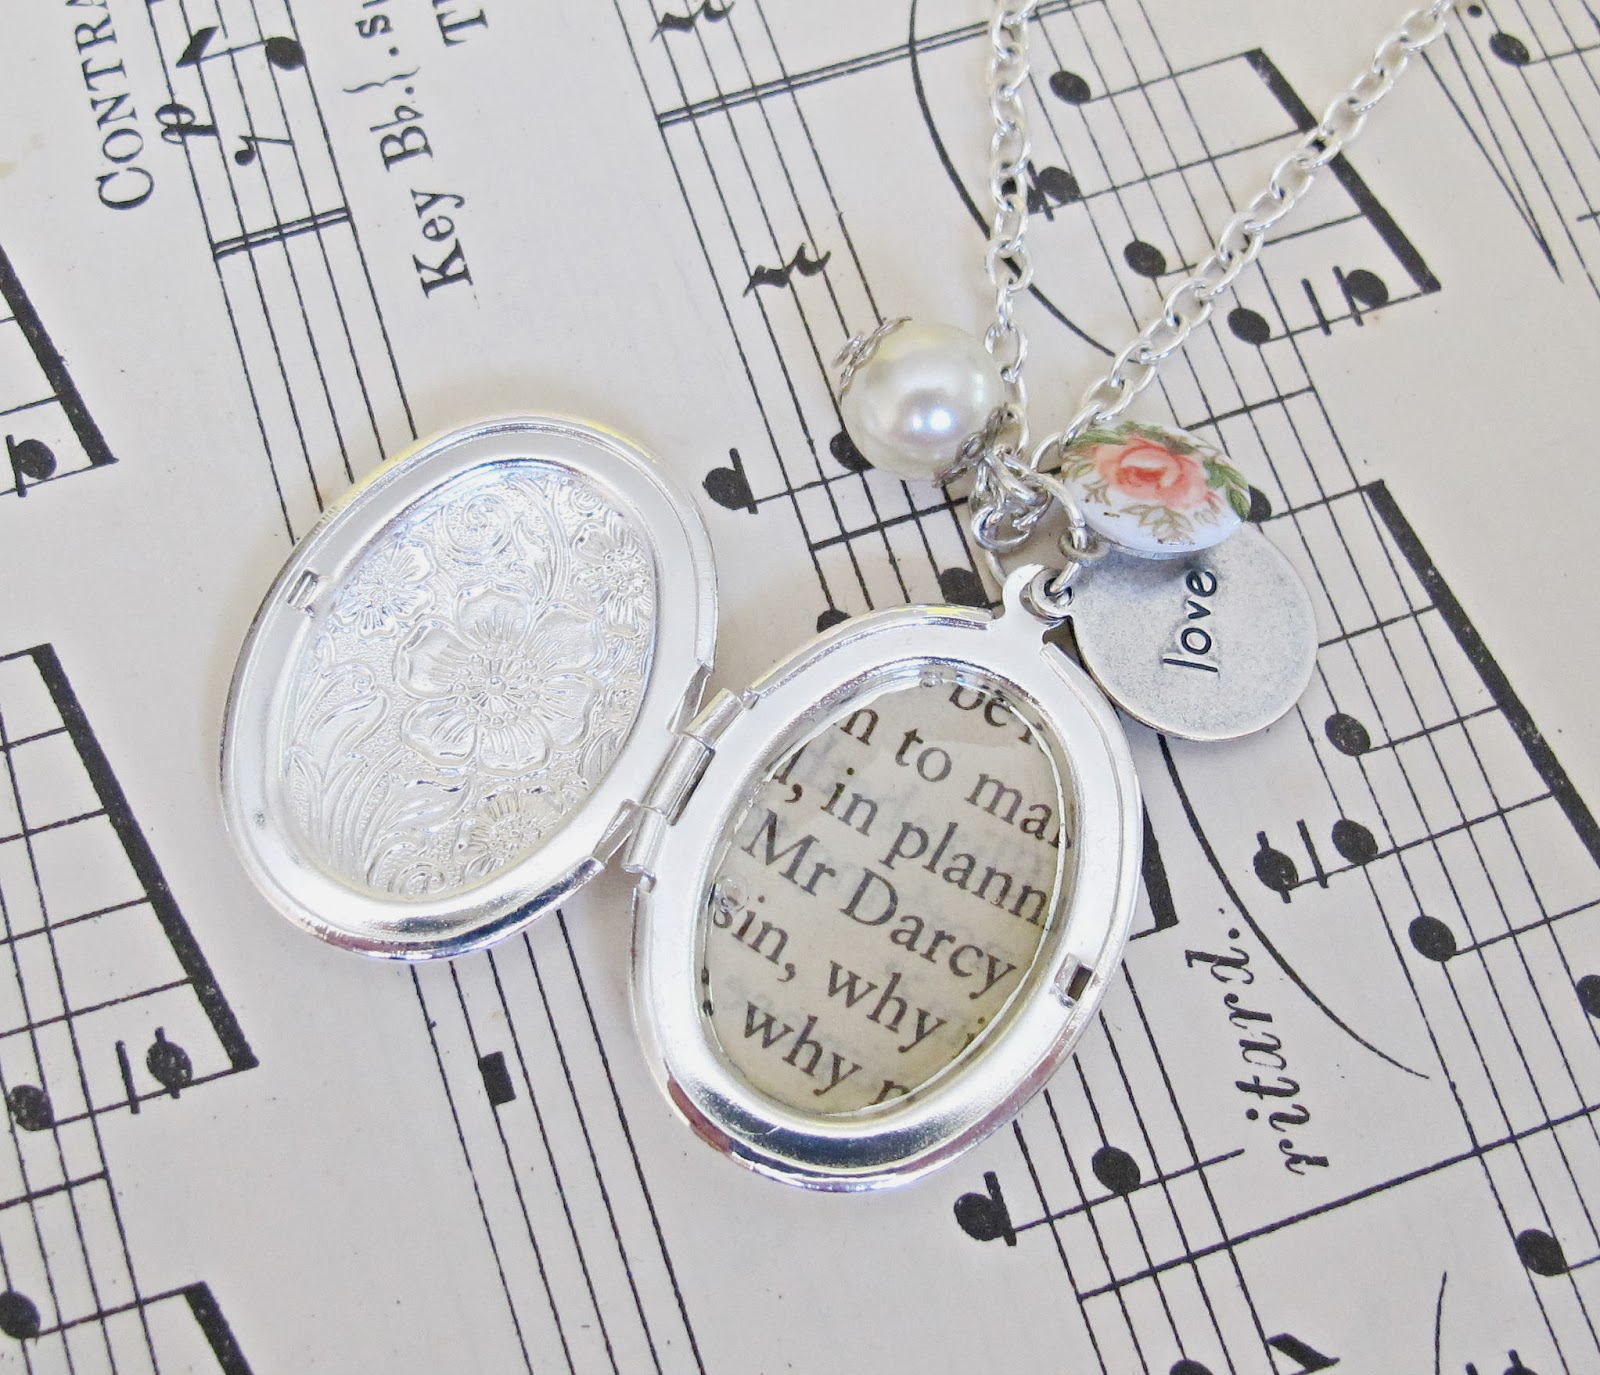 image mr darcy locket necklace two cheeky monkeys jane austen pride and prejudice silver plated love quote ivory glass pearl vintage rose cabochon porcelain